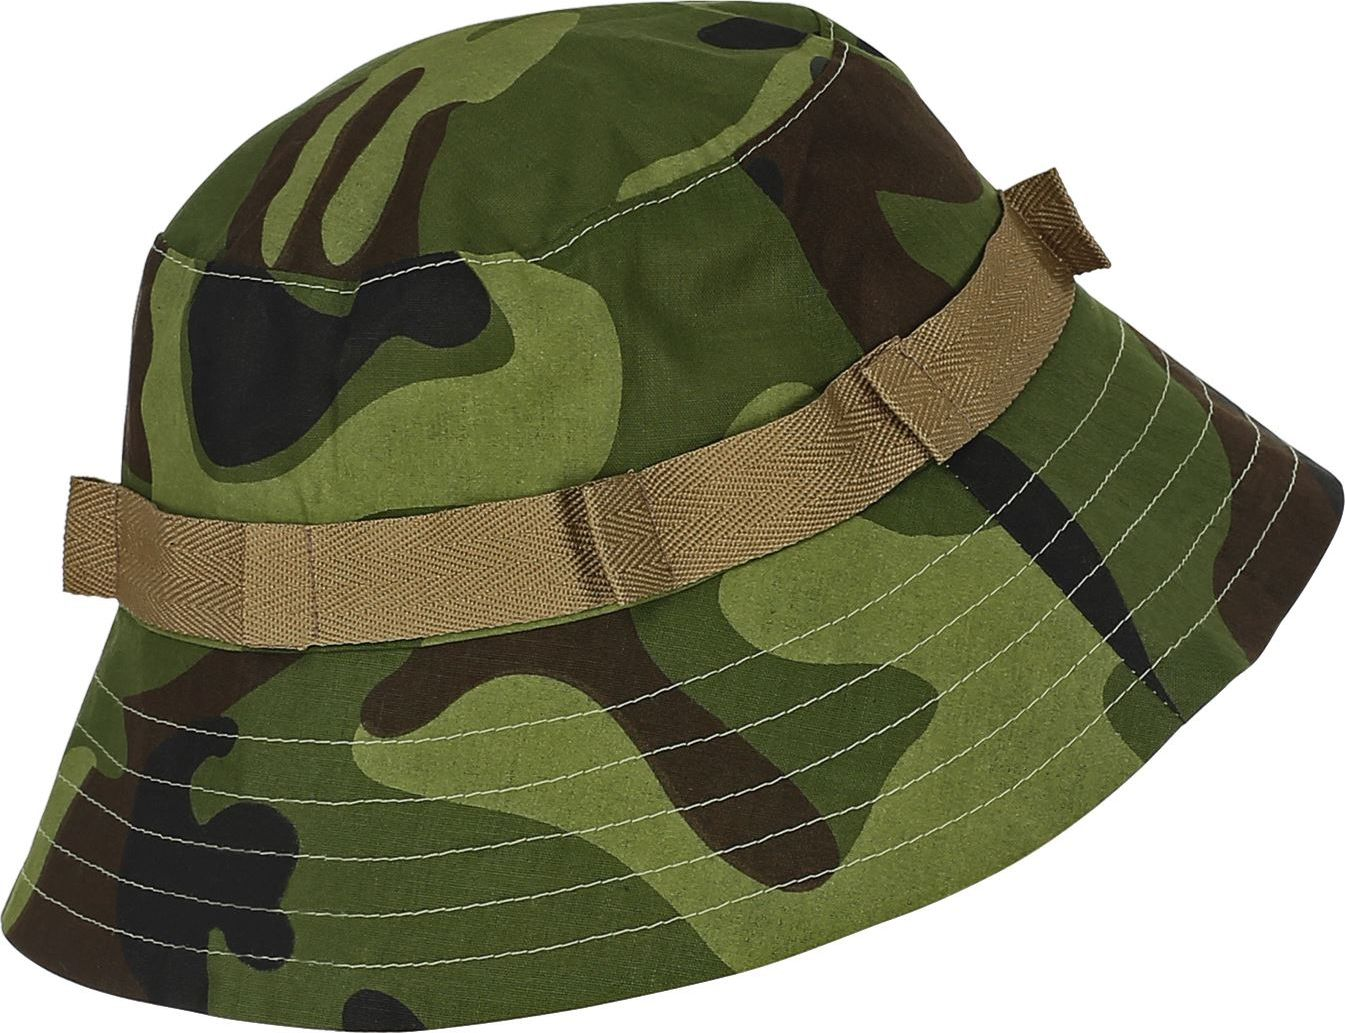 Leger muts camouflage